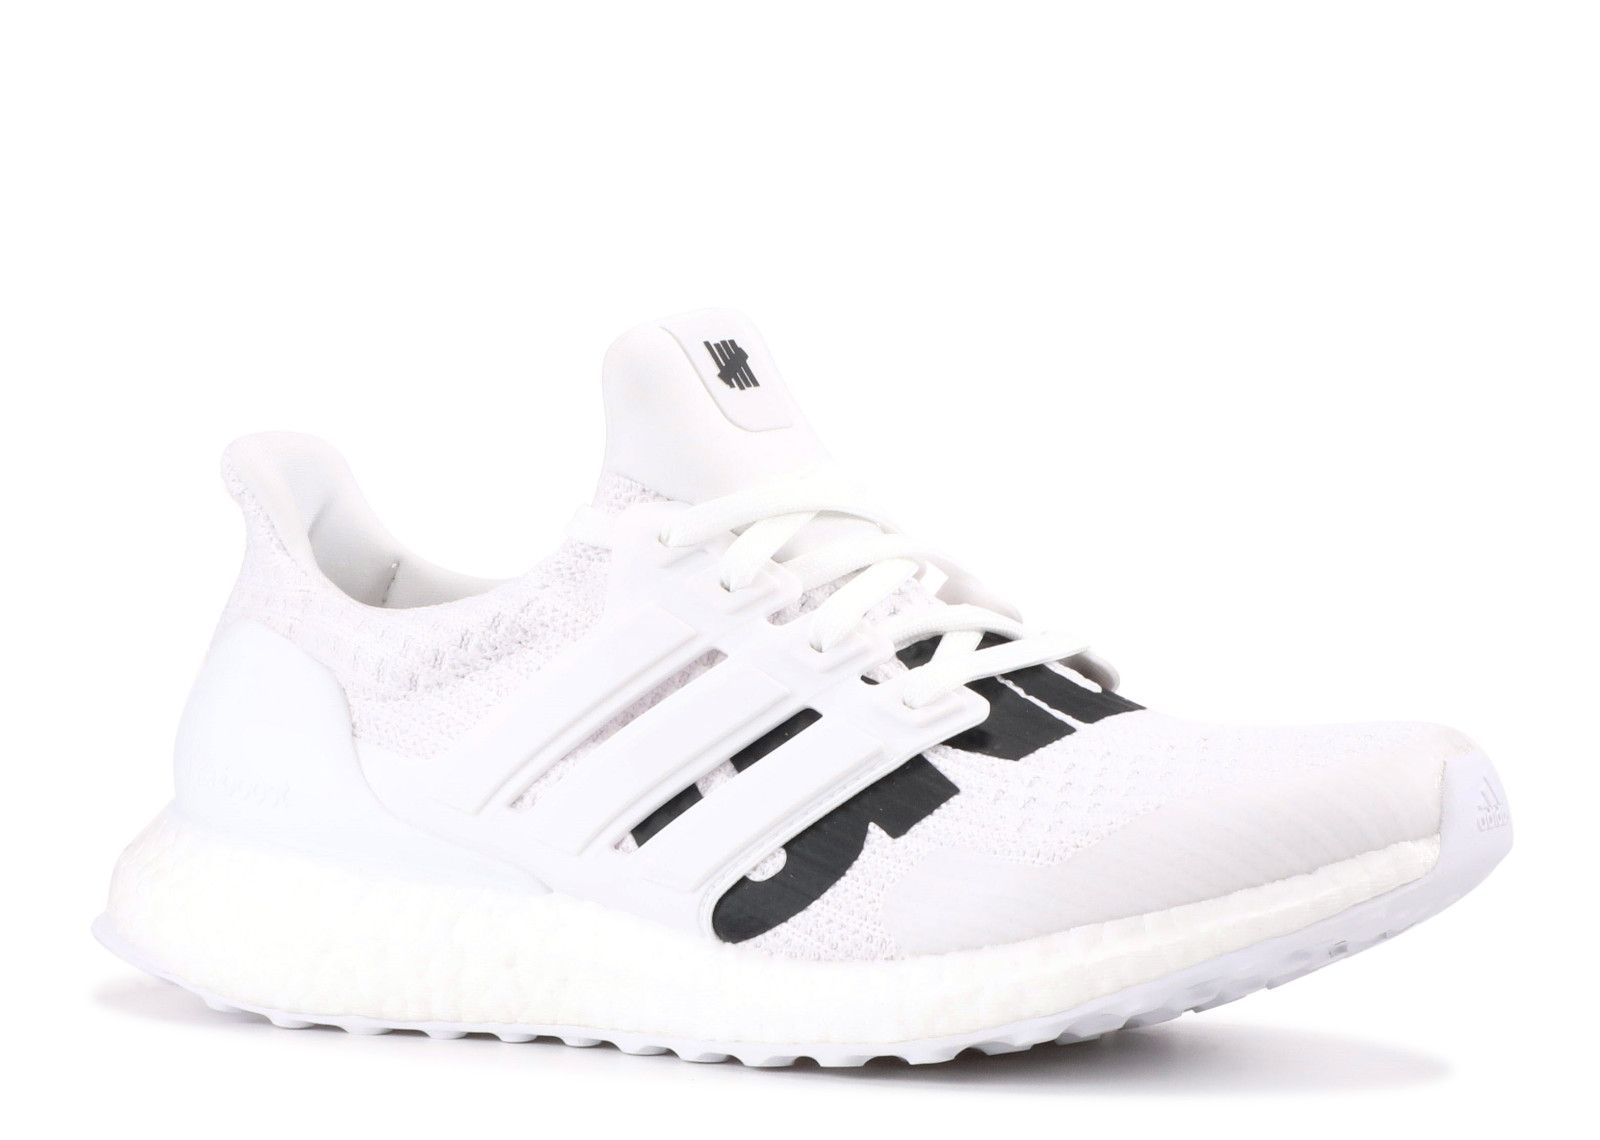 Undefeated X UltraBoost 4.0 'White' - Adidas - BB9102 - ftwwht ...